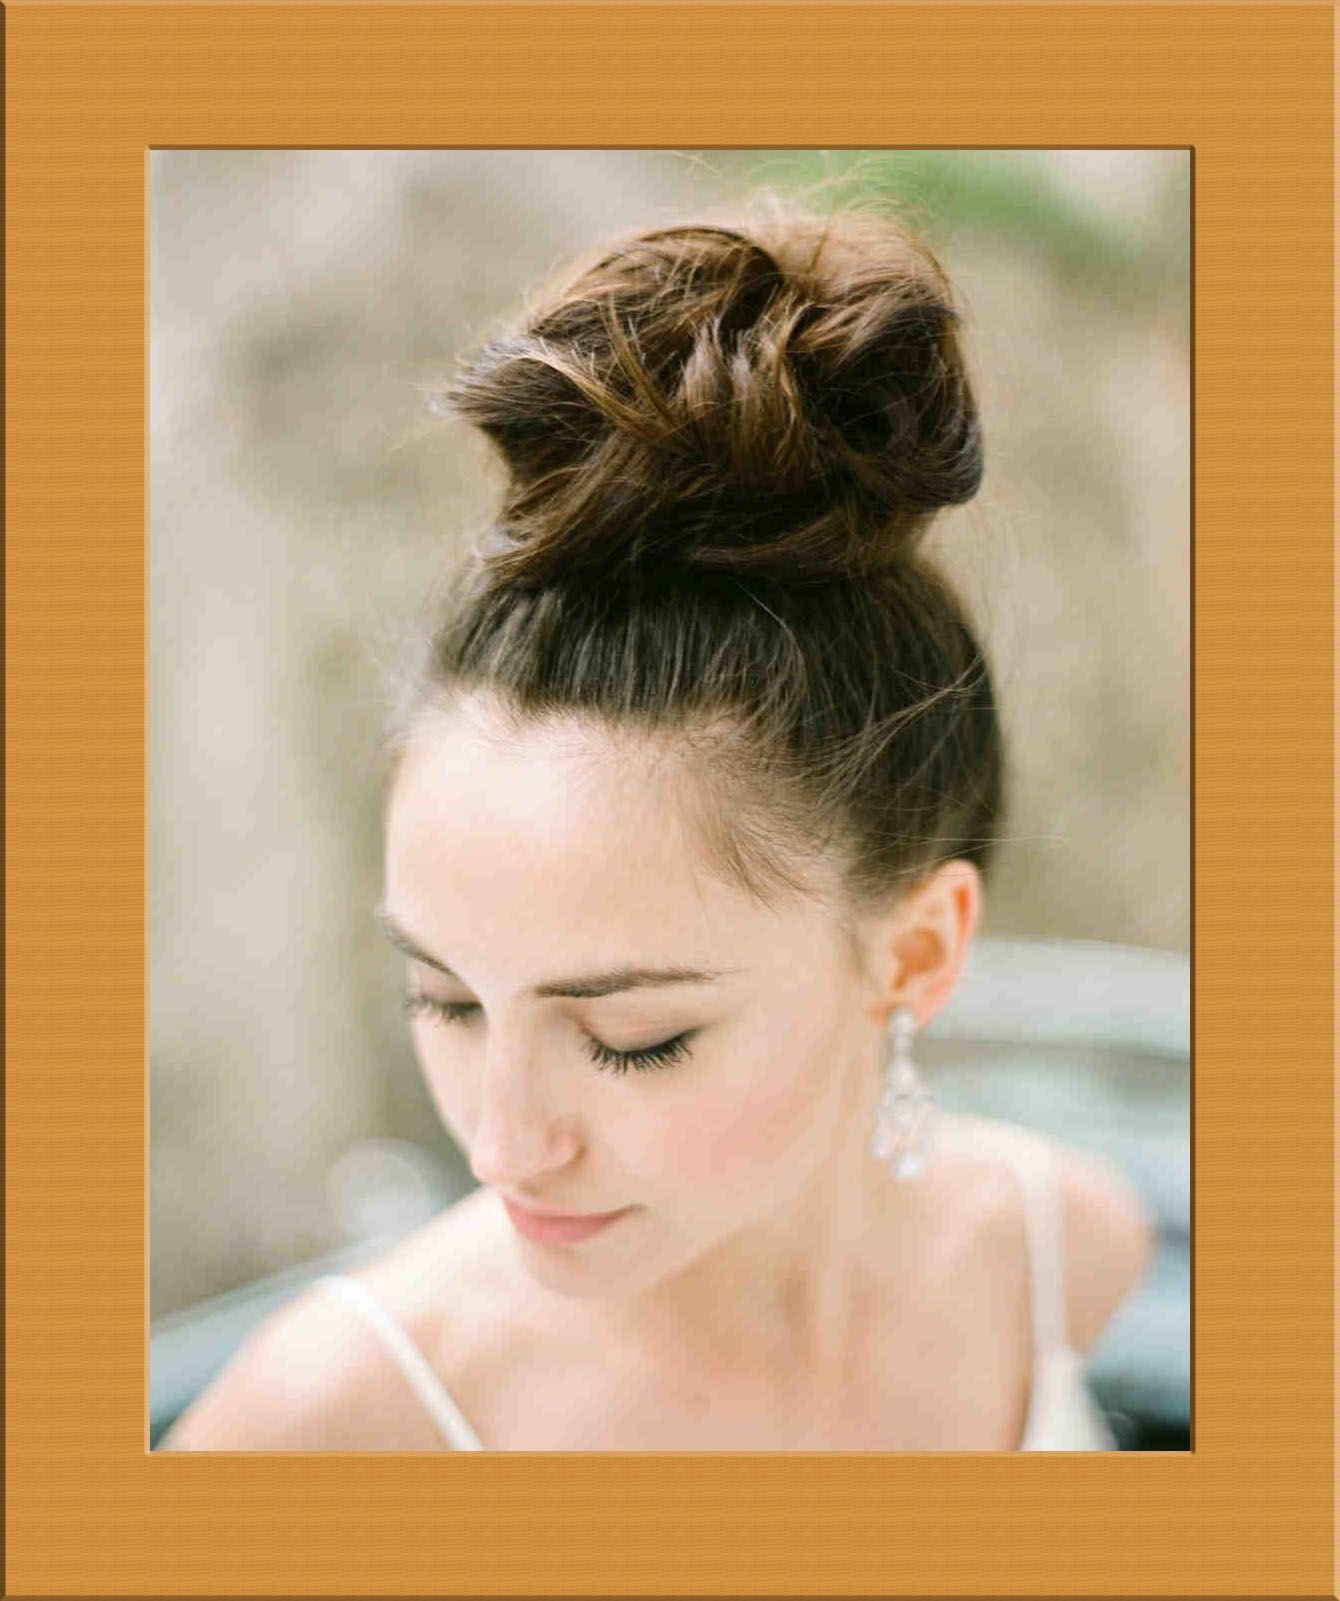 4 Most Common Problems With Hair Styles – 2021